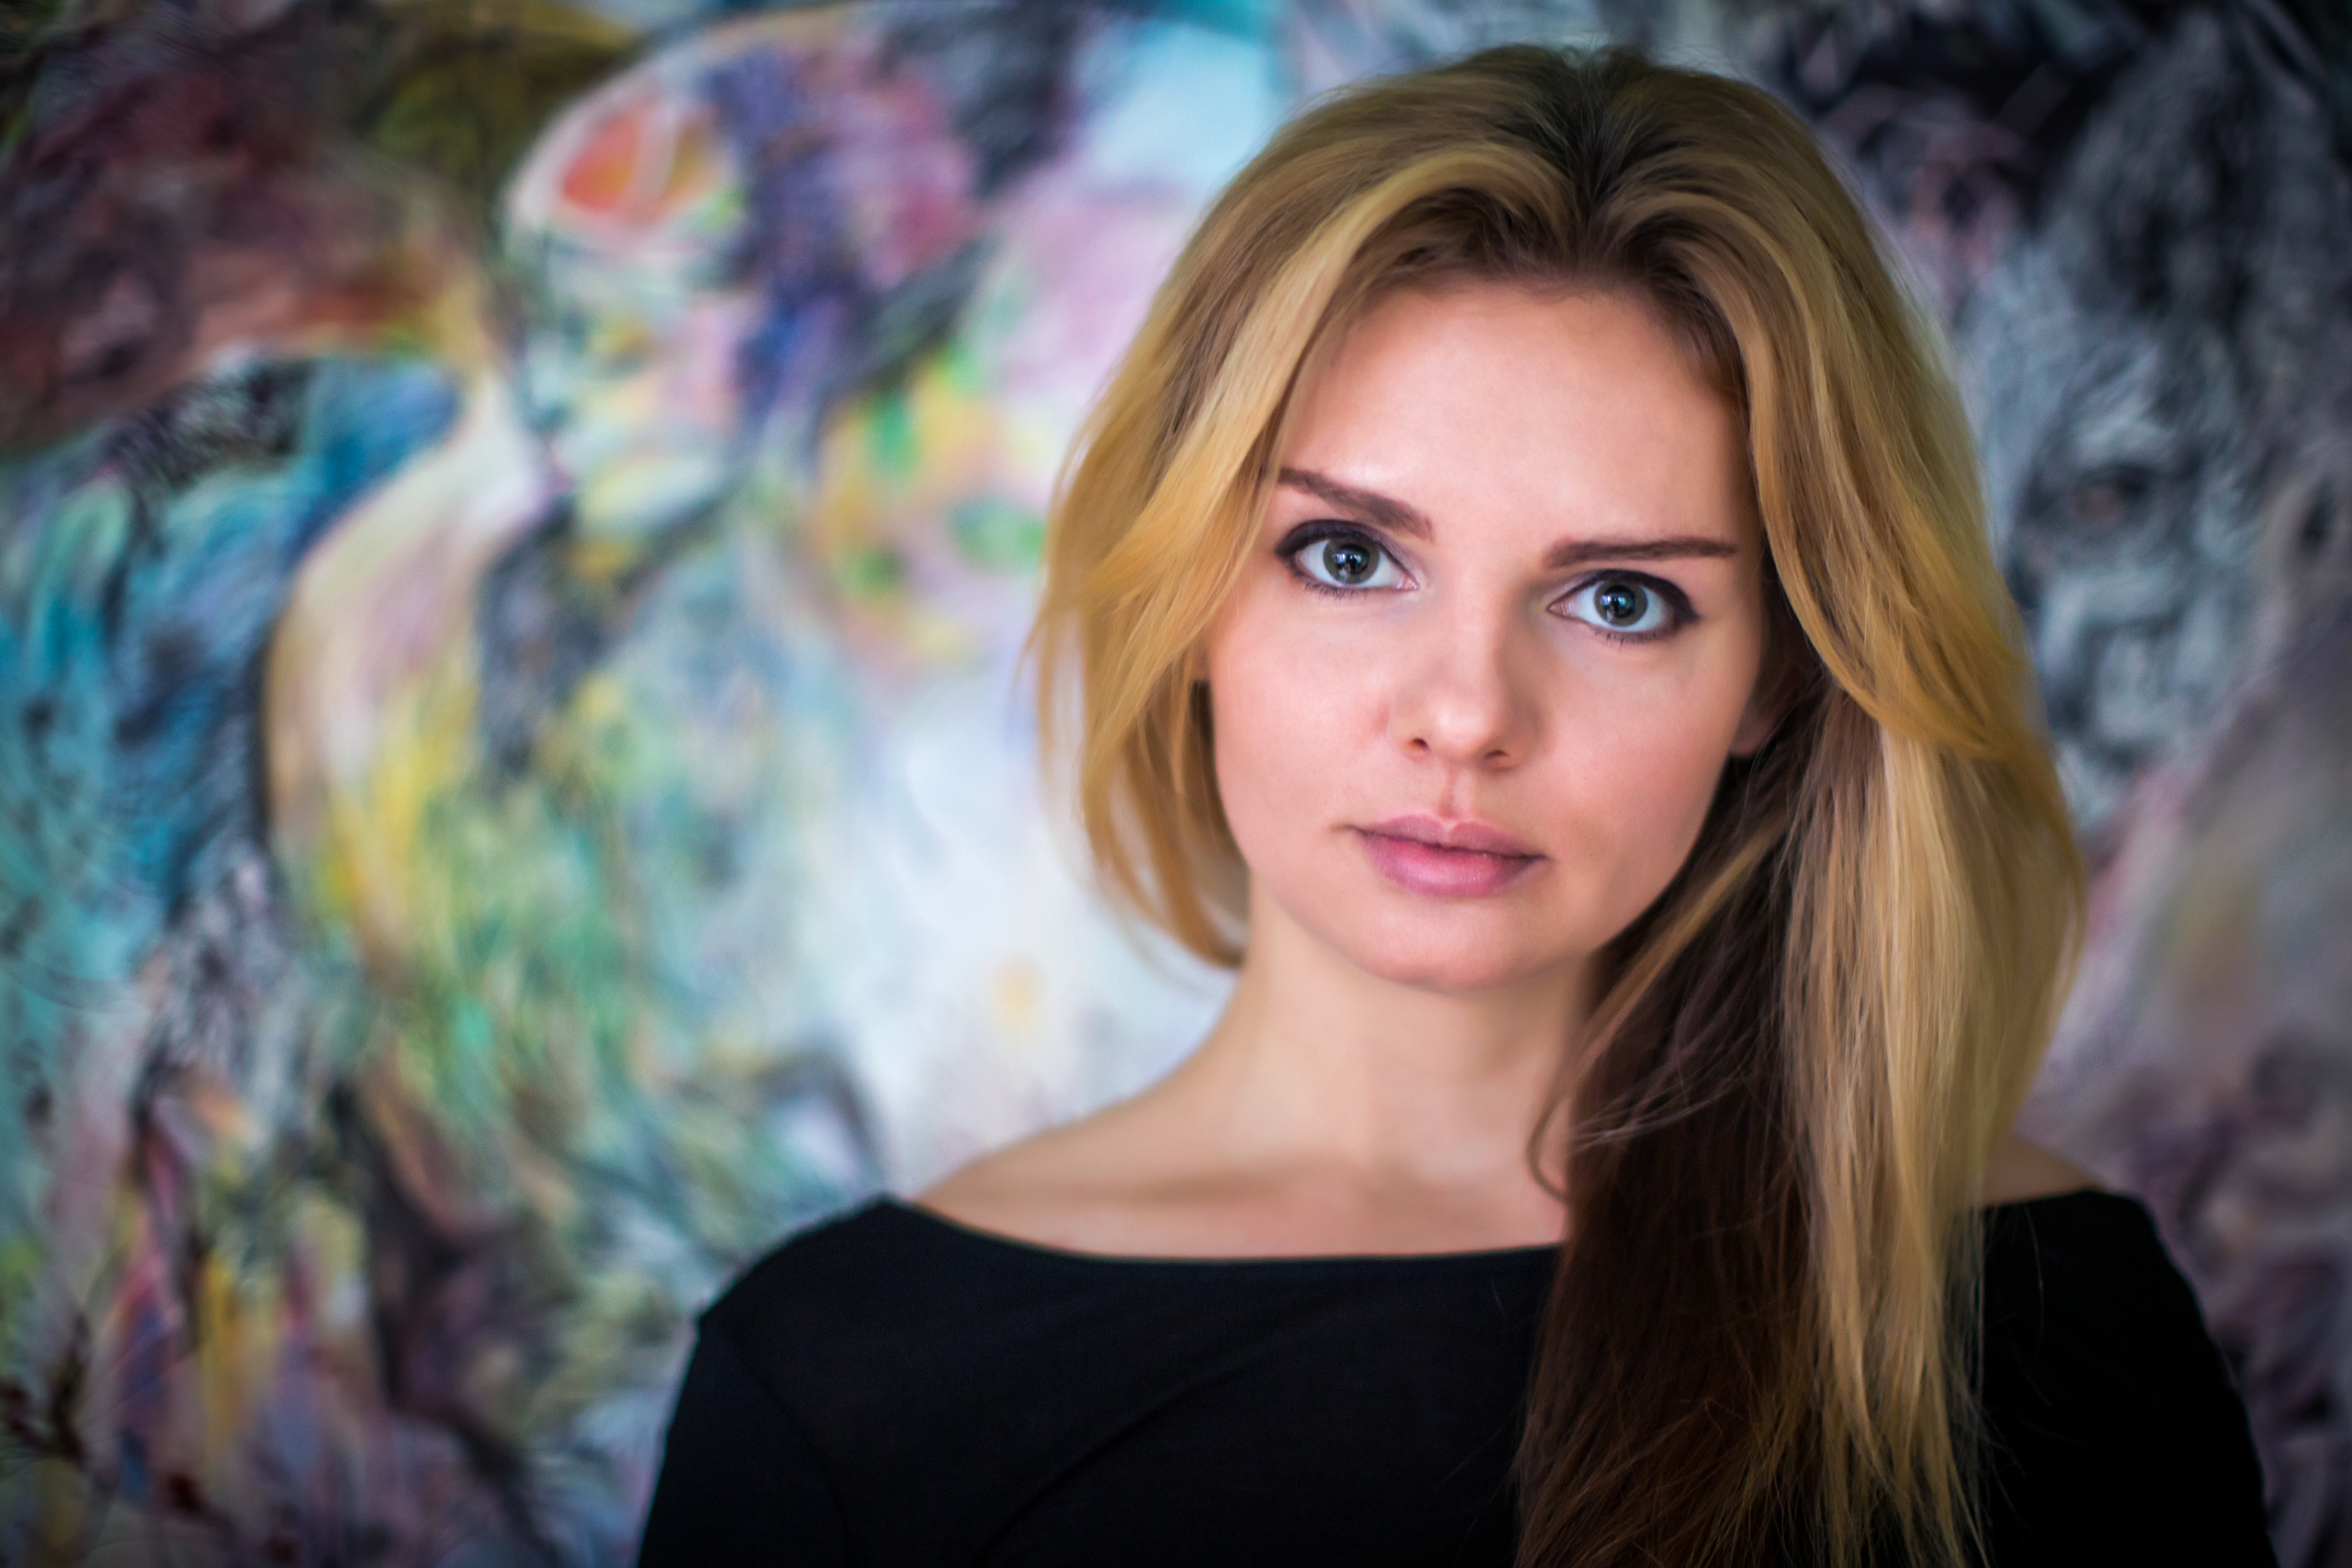 kate-goltseva-profile-picture-reartiste.jpg